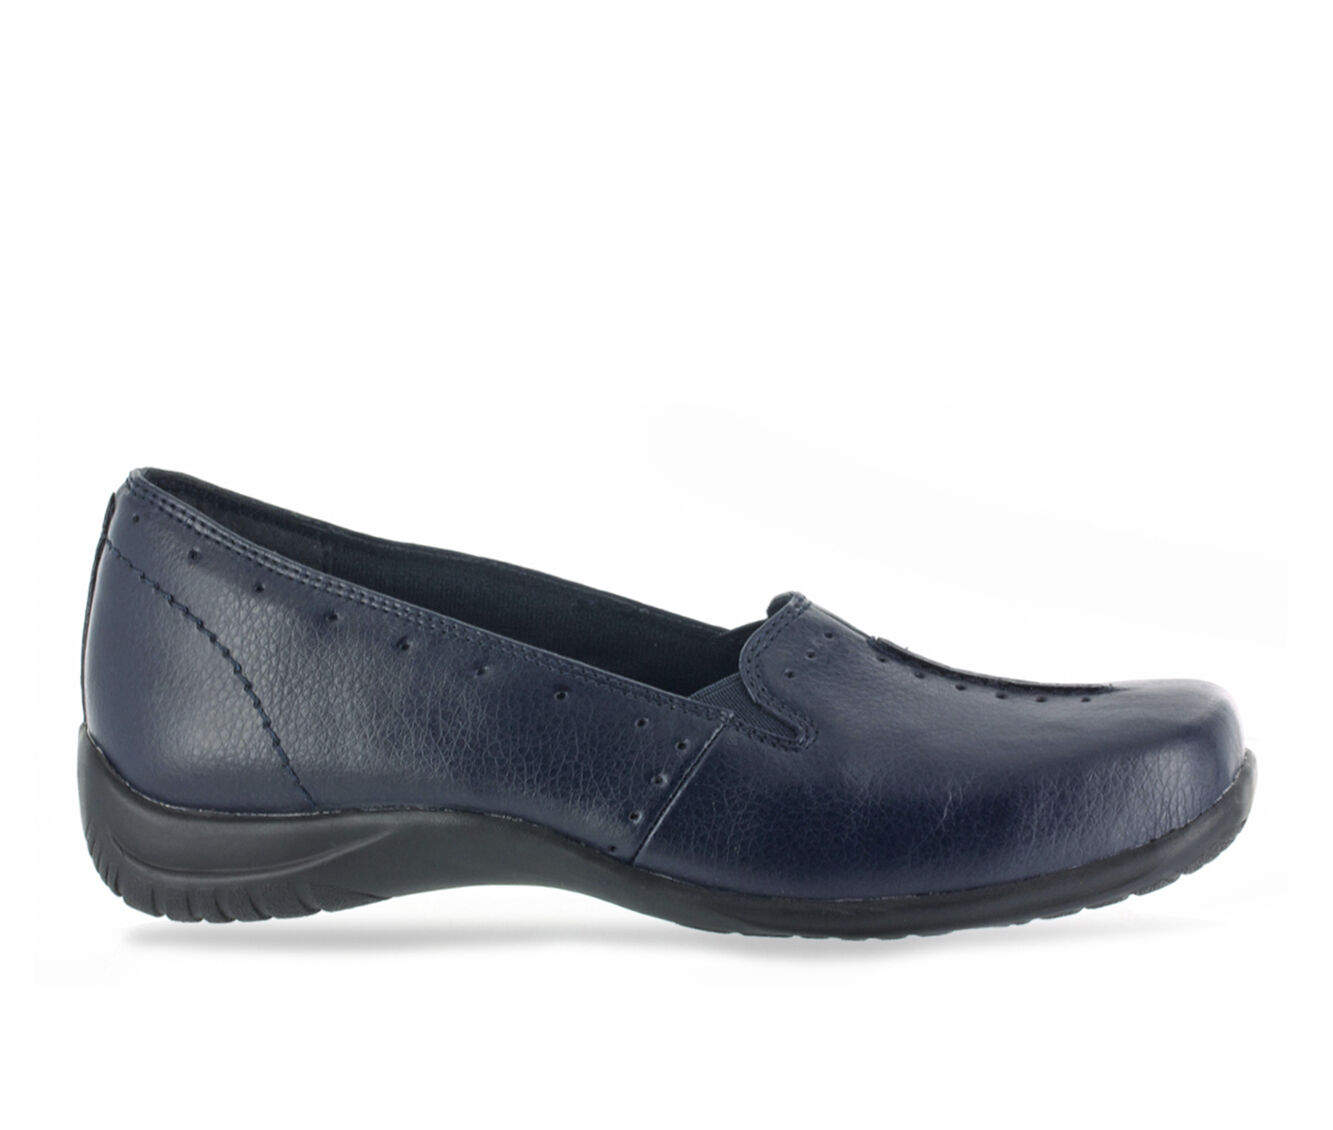 choose authentic Women's Easy Street Purpose Shoes Navy Tumbled